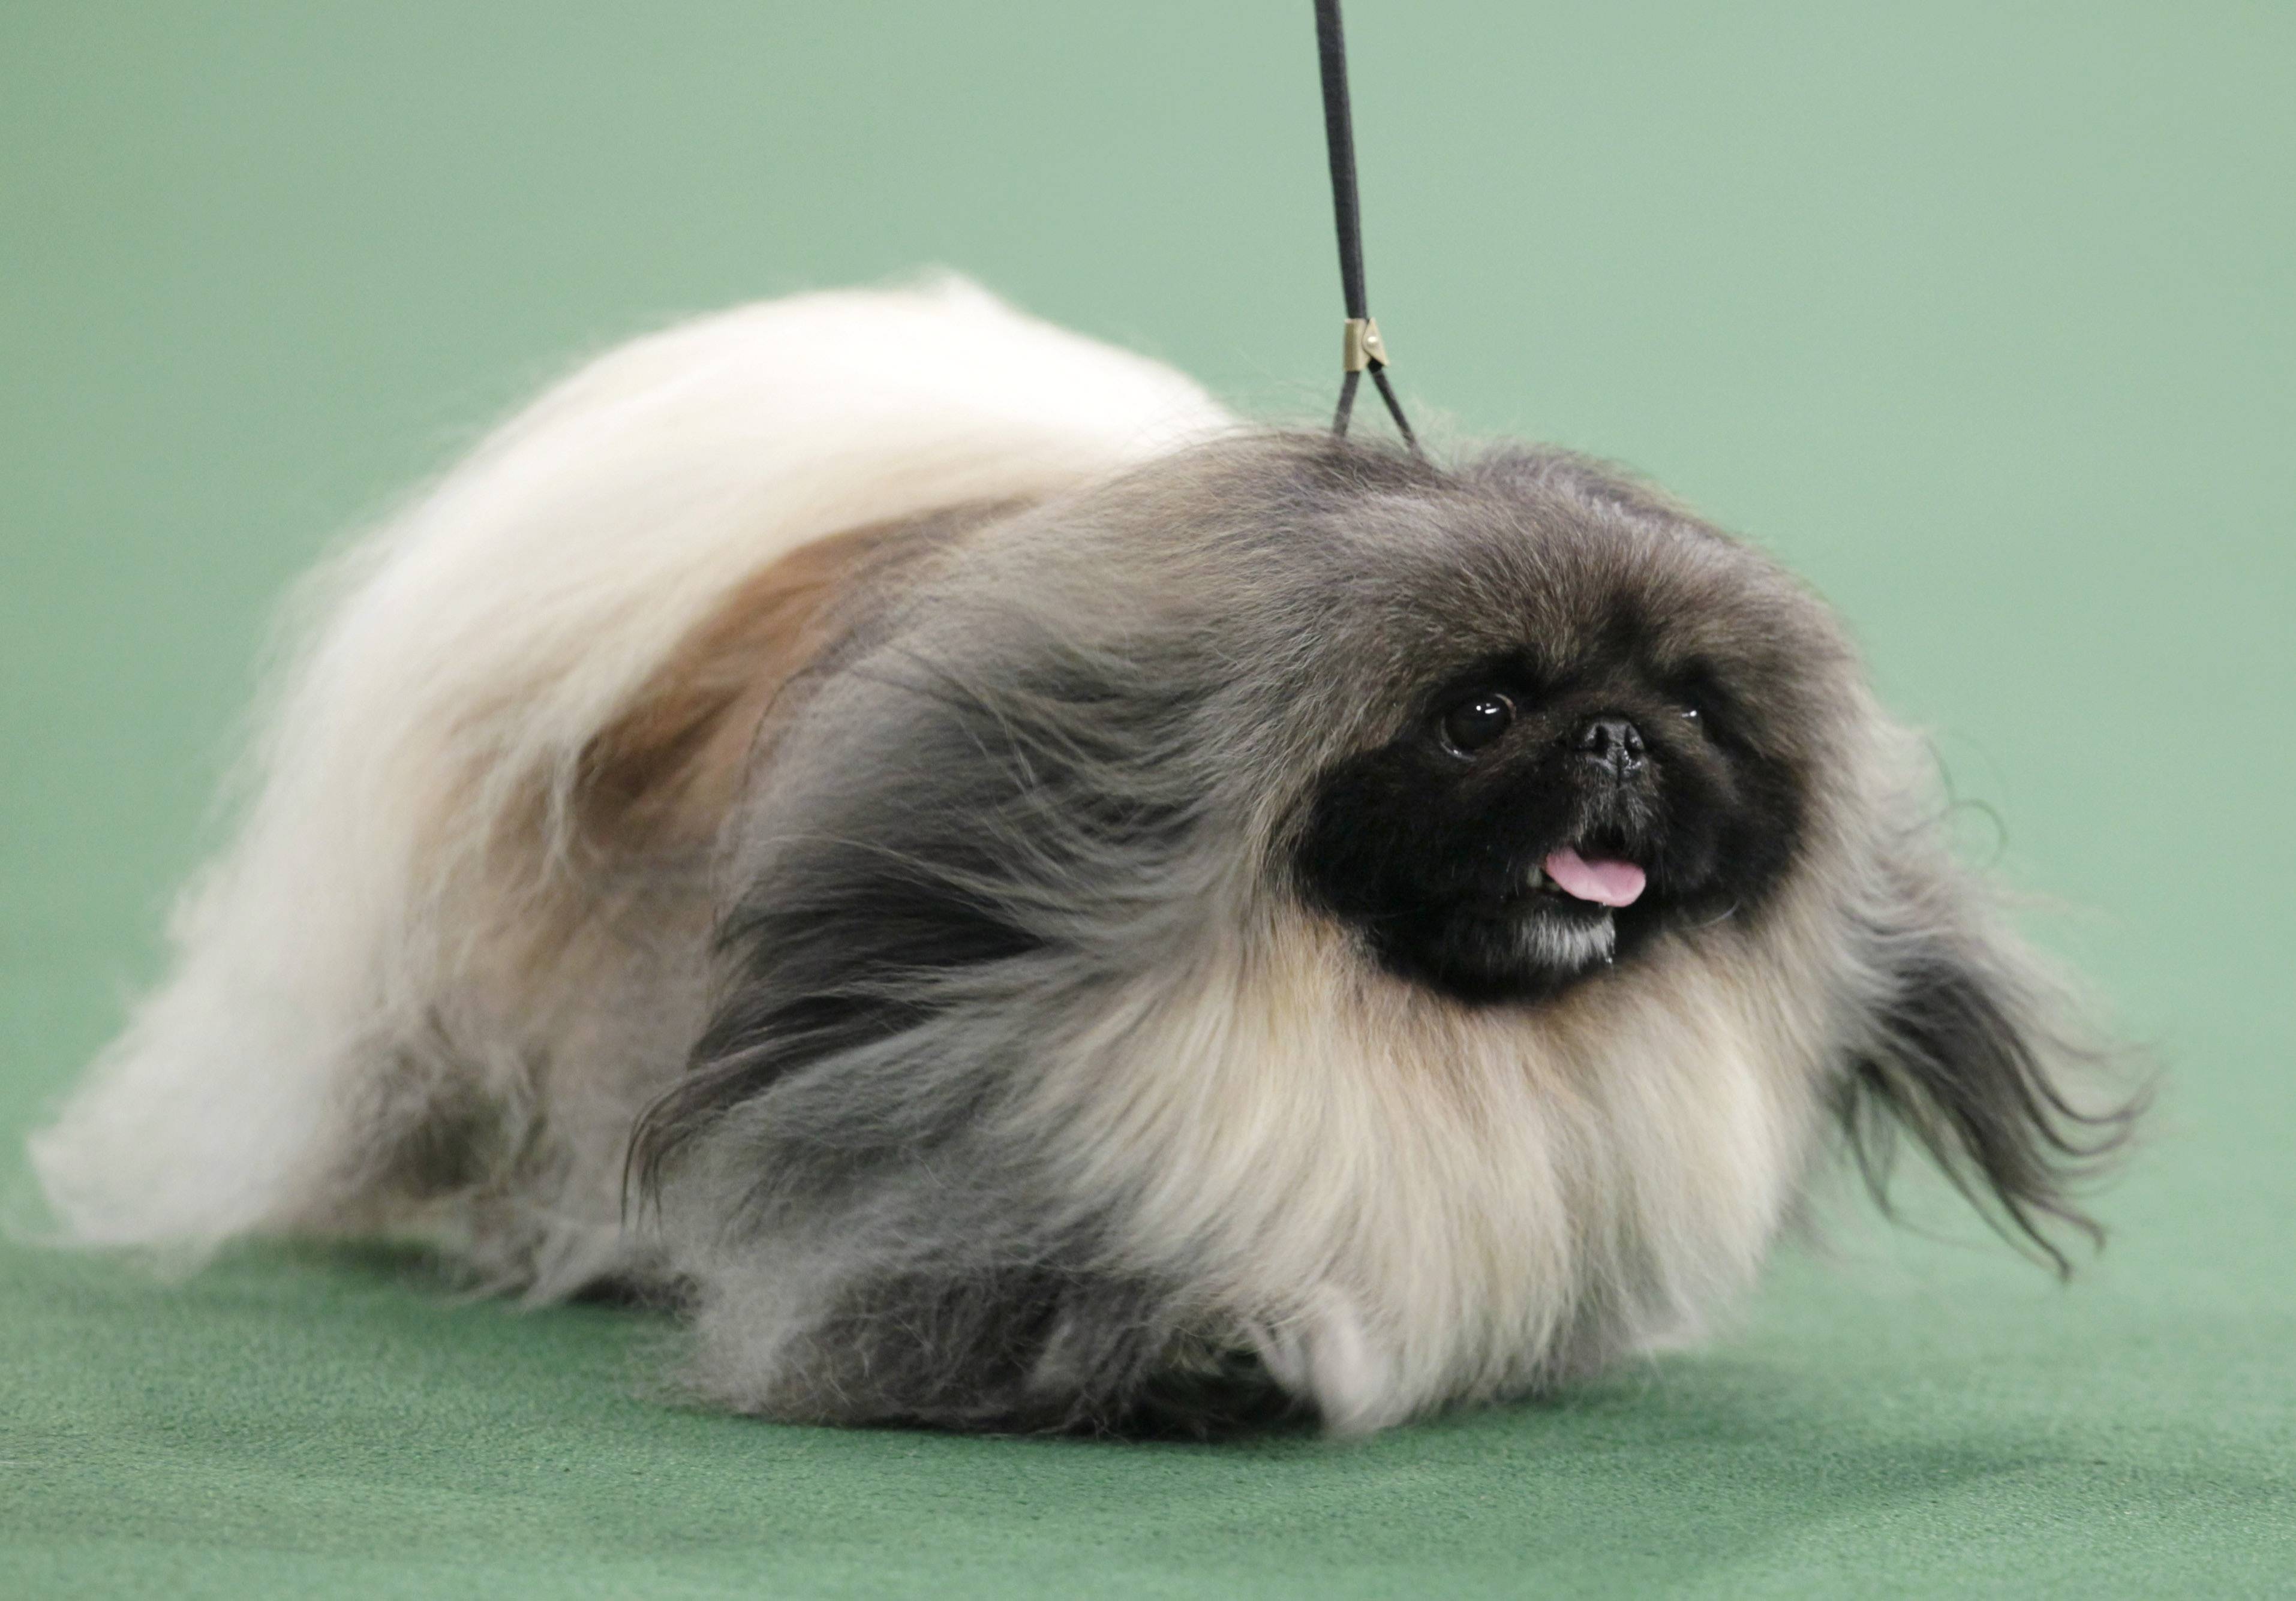 Malachy, a Pekingese, was named Best in Show at the Westminster dog show.